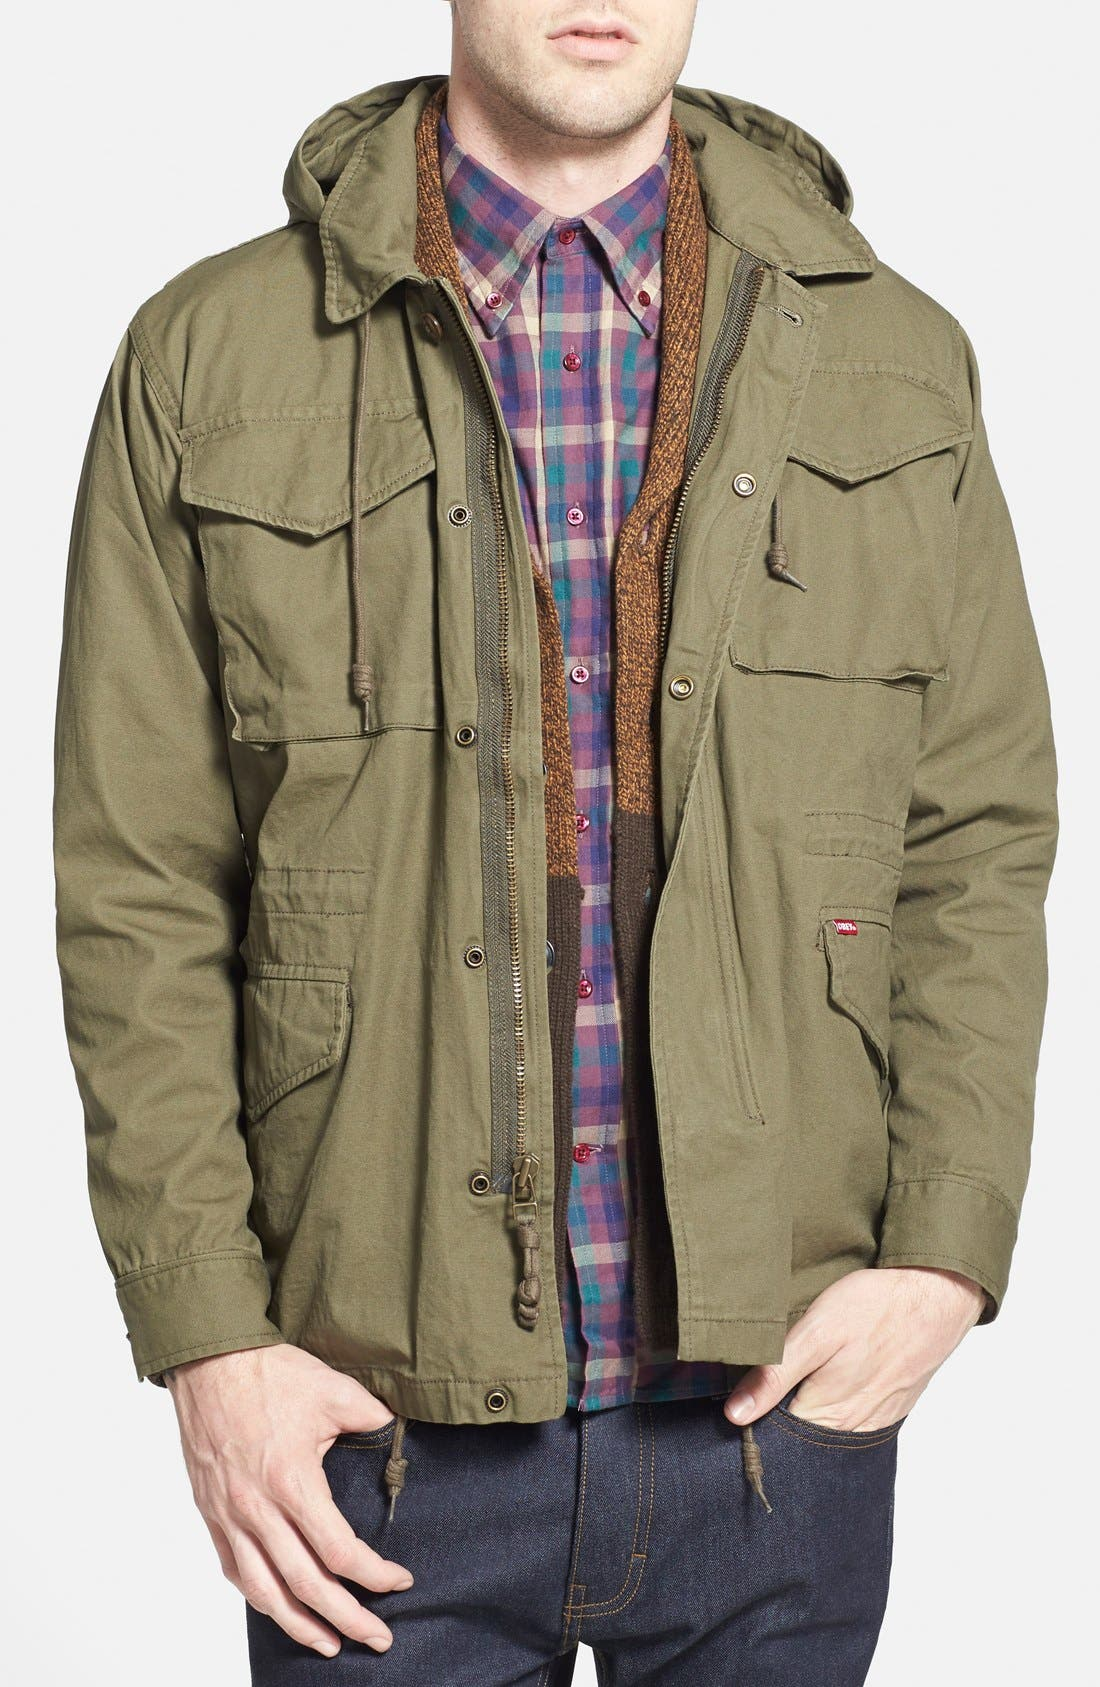 Alternate Image 1 Selected - Obey 'Iggy' M-65 Field Jacket with Detachable Hood